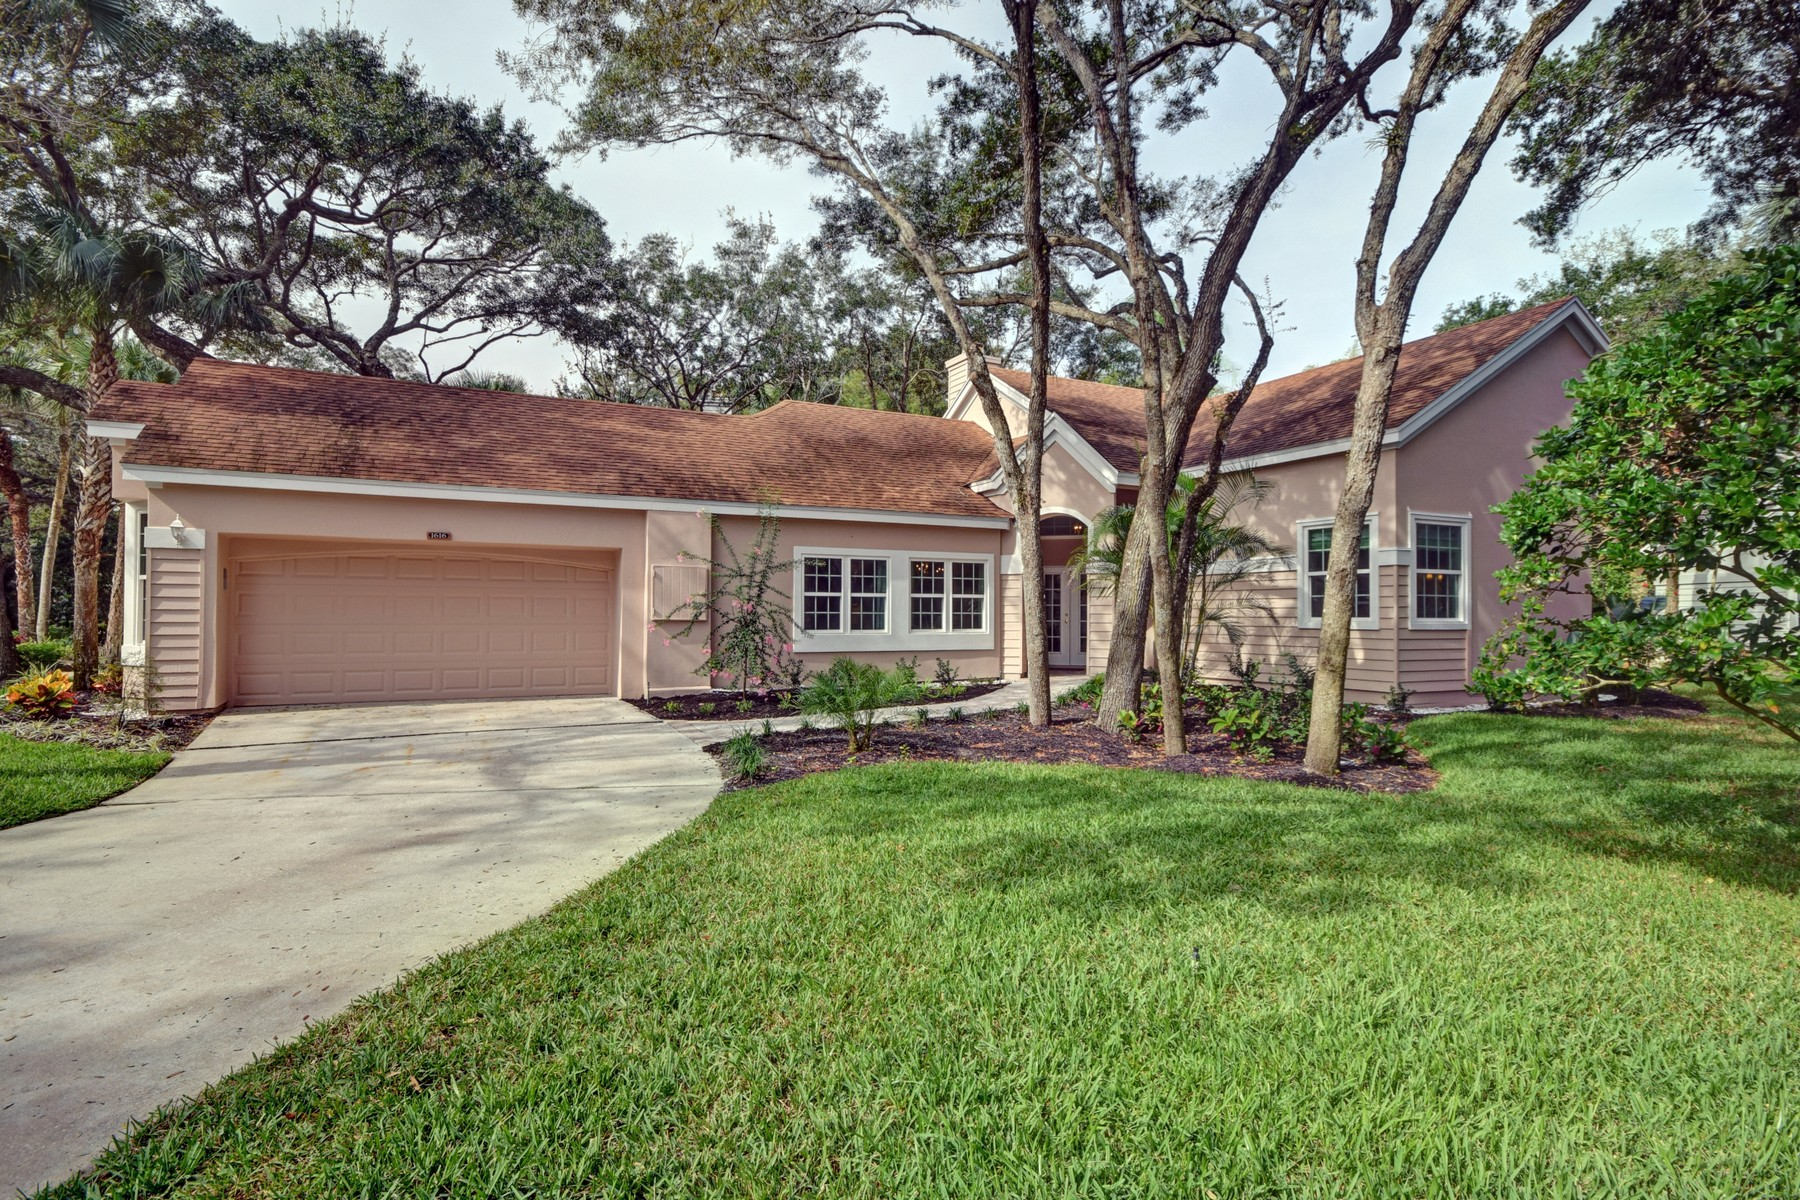 Single Family Home for Sale at Exquisitely Updated Home in Sea Oaks 1616 Bent Oak Lane Vero Beach, Florida, 32963 United States